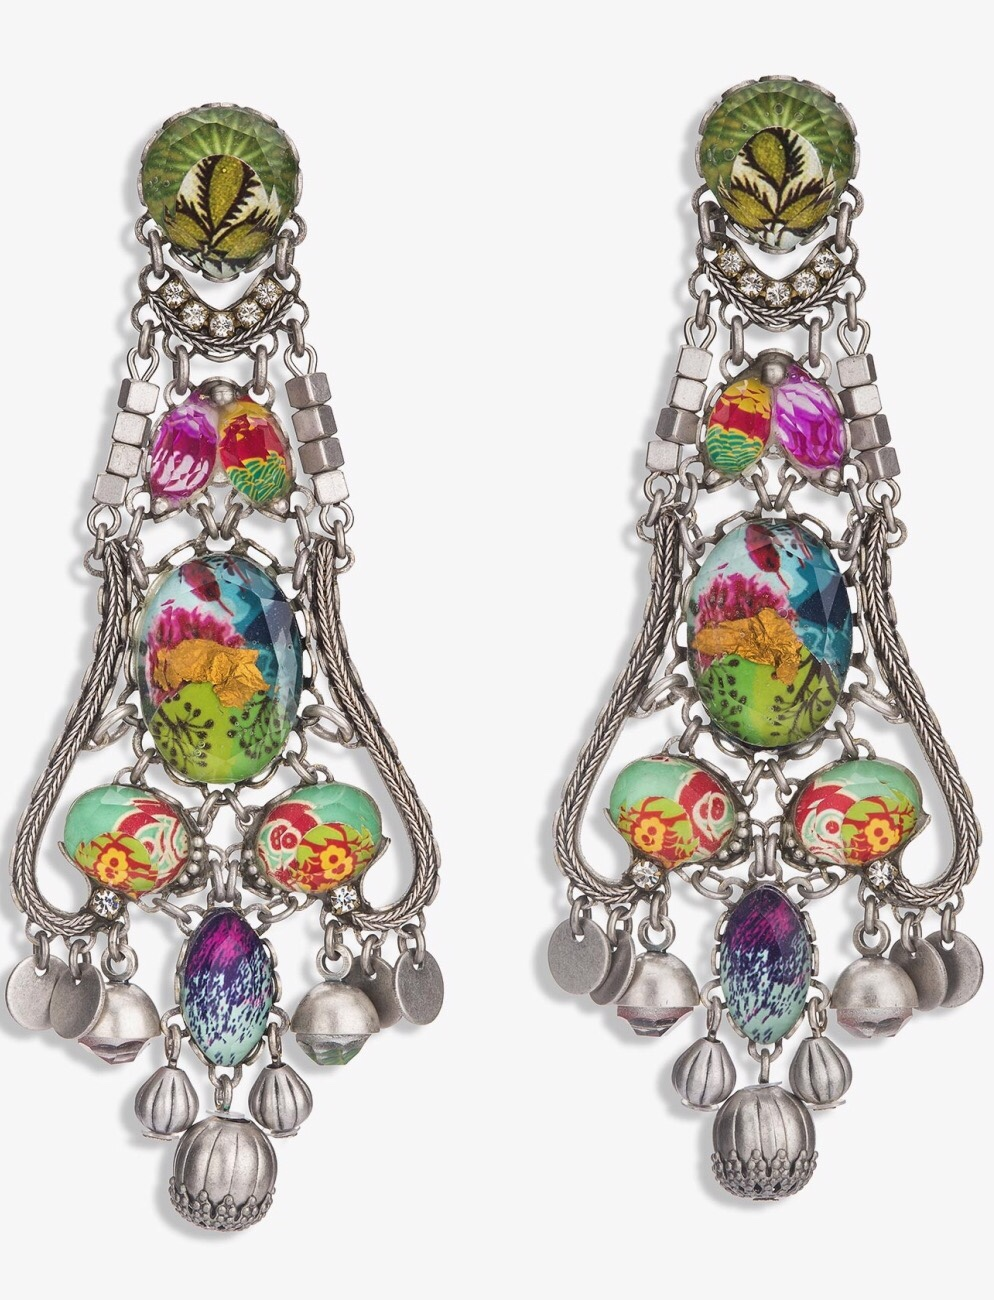 {Smitten} Summer 2015 Radiance Earrings In Pops of Pink Jeweled Hues by Ayala Bar